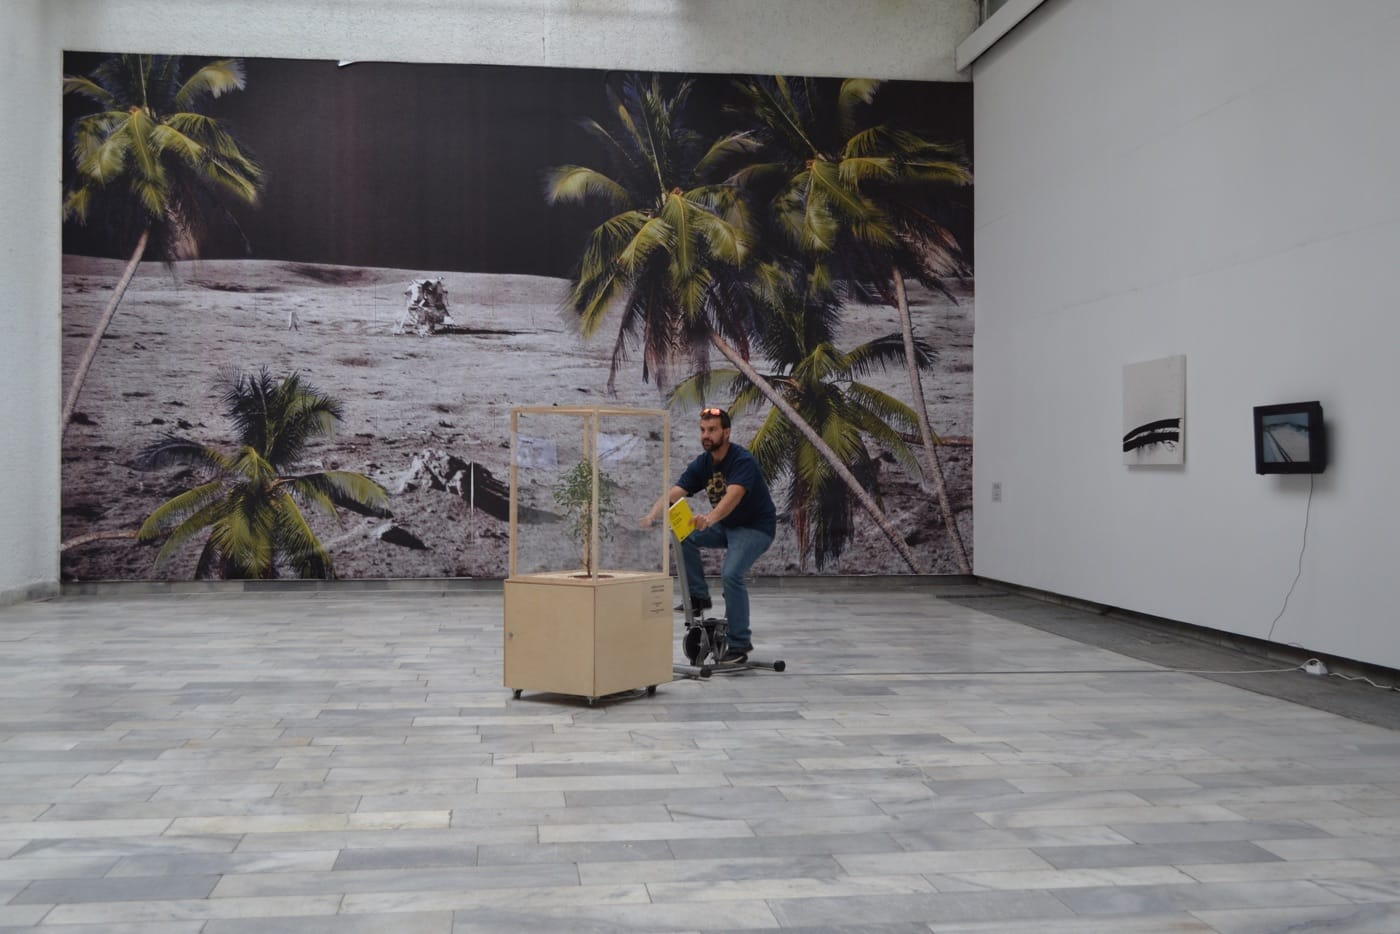 From left to right: Krassimir Terziev, Untitled, Albena Baeva, The Last Benjamin, and Addie Wagenknecht, Black Hawk Paint, at Being Post-digital (2015)